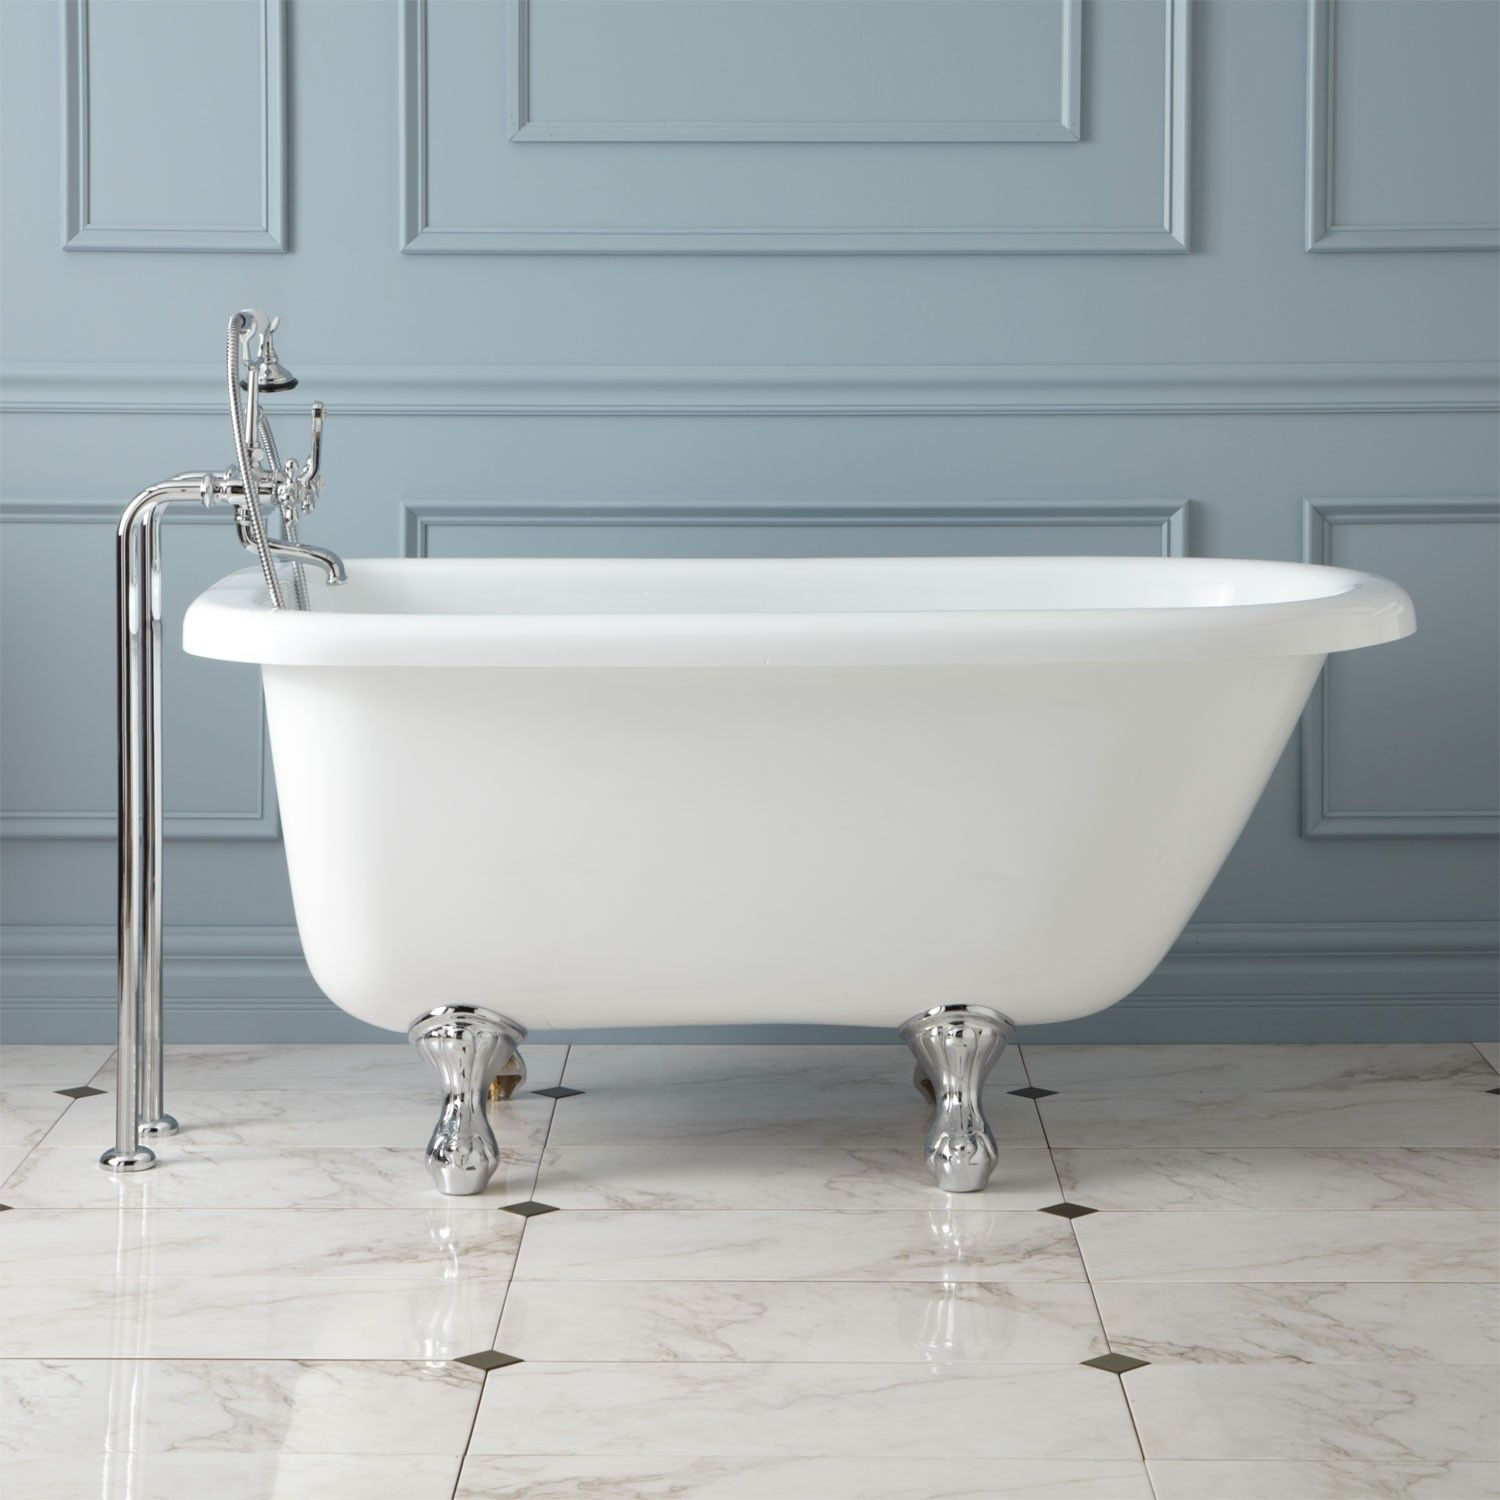 57 97995 bennington acrylic clawfoot tub bathroom - Acrylic Clawfoot Tub